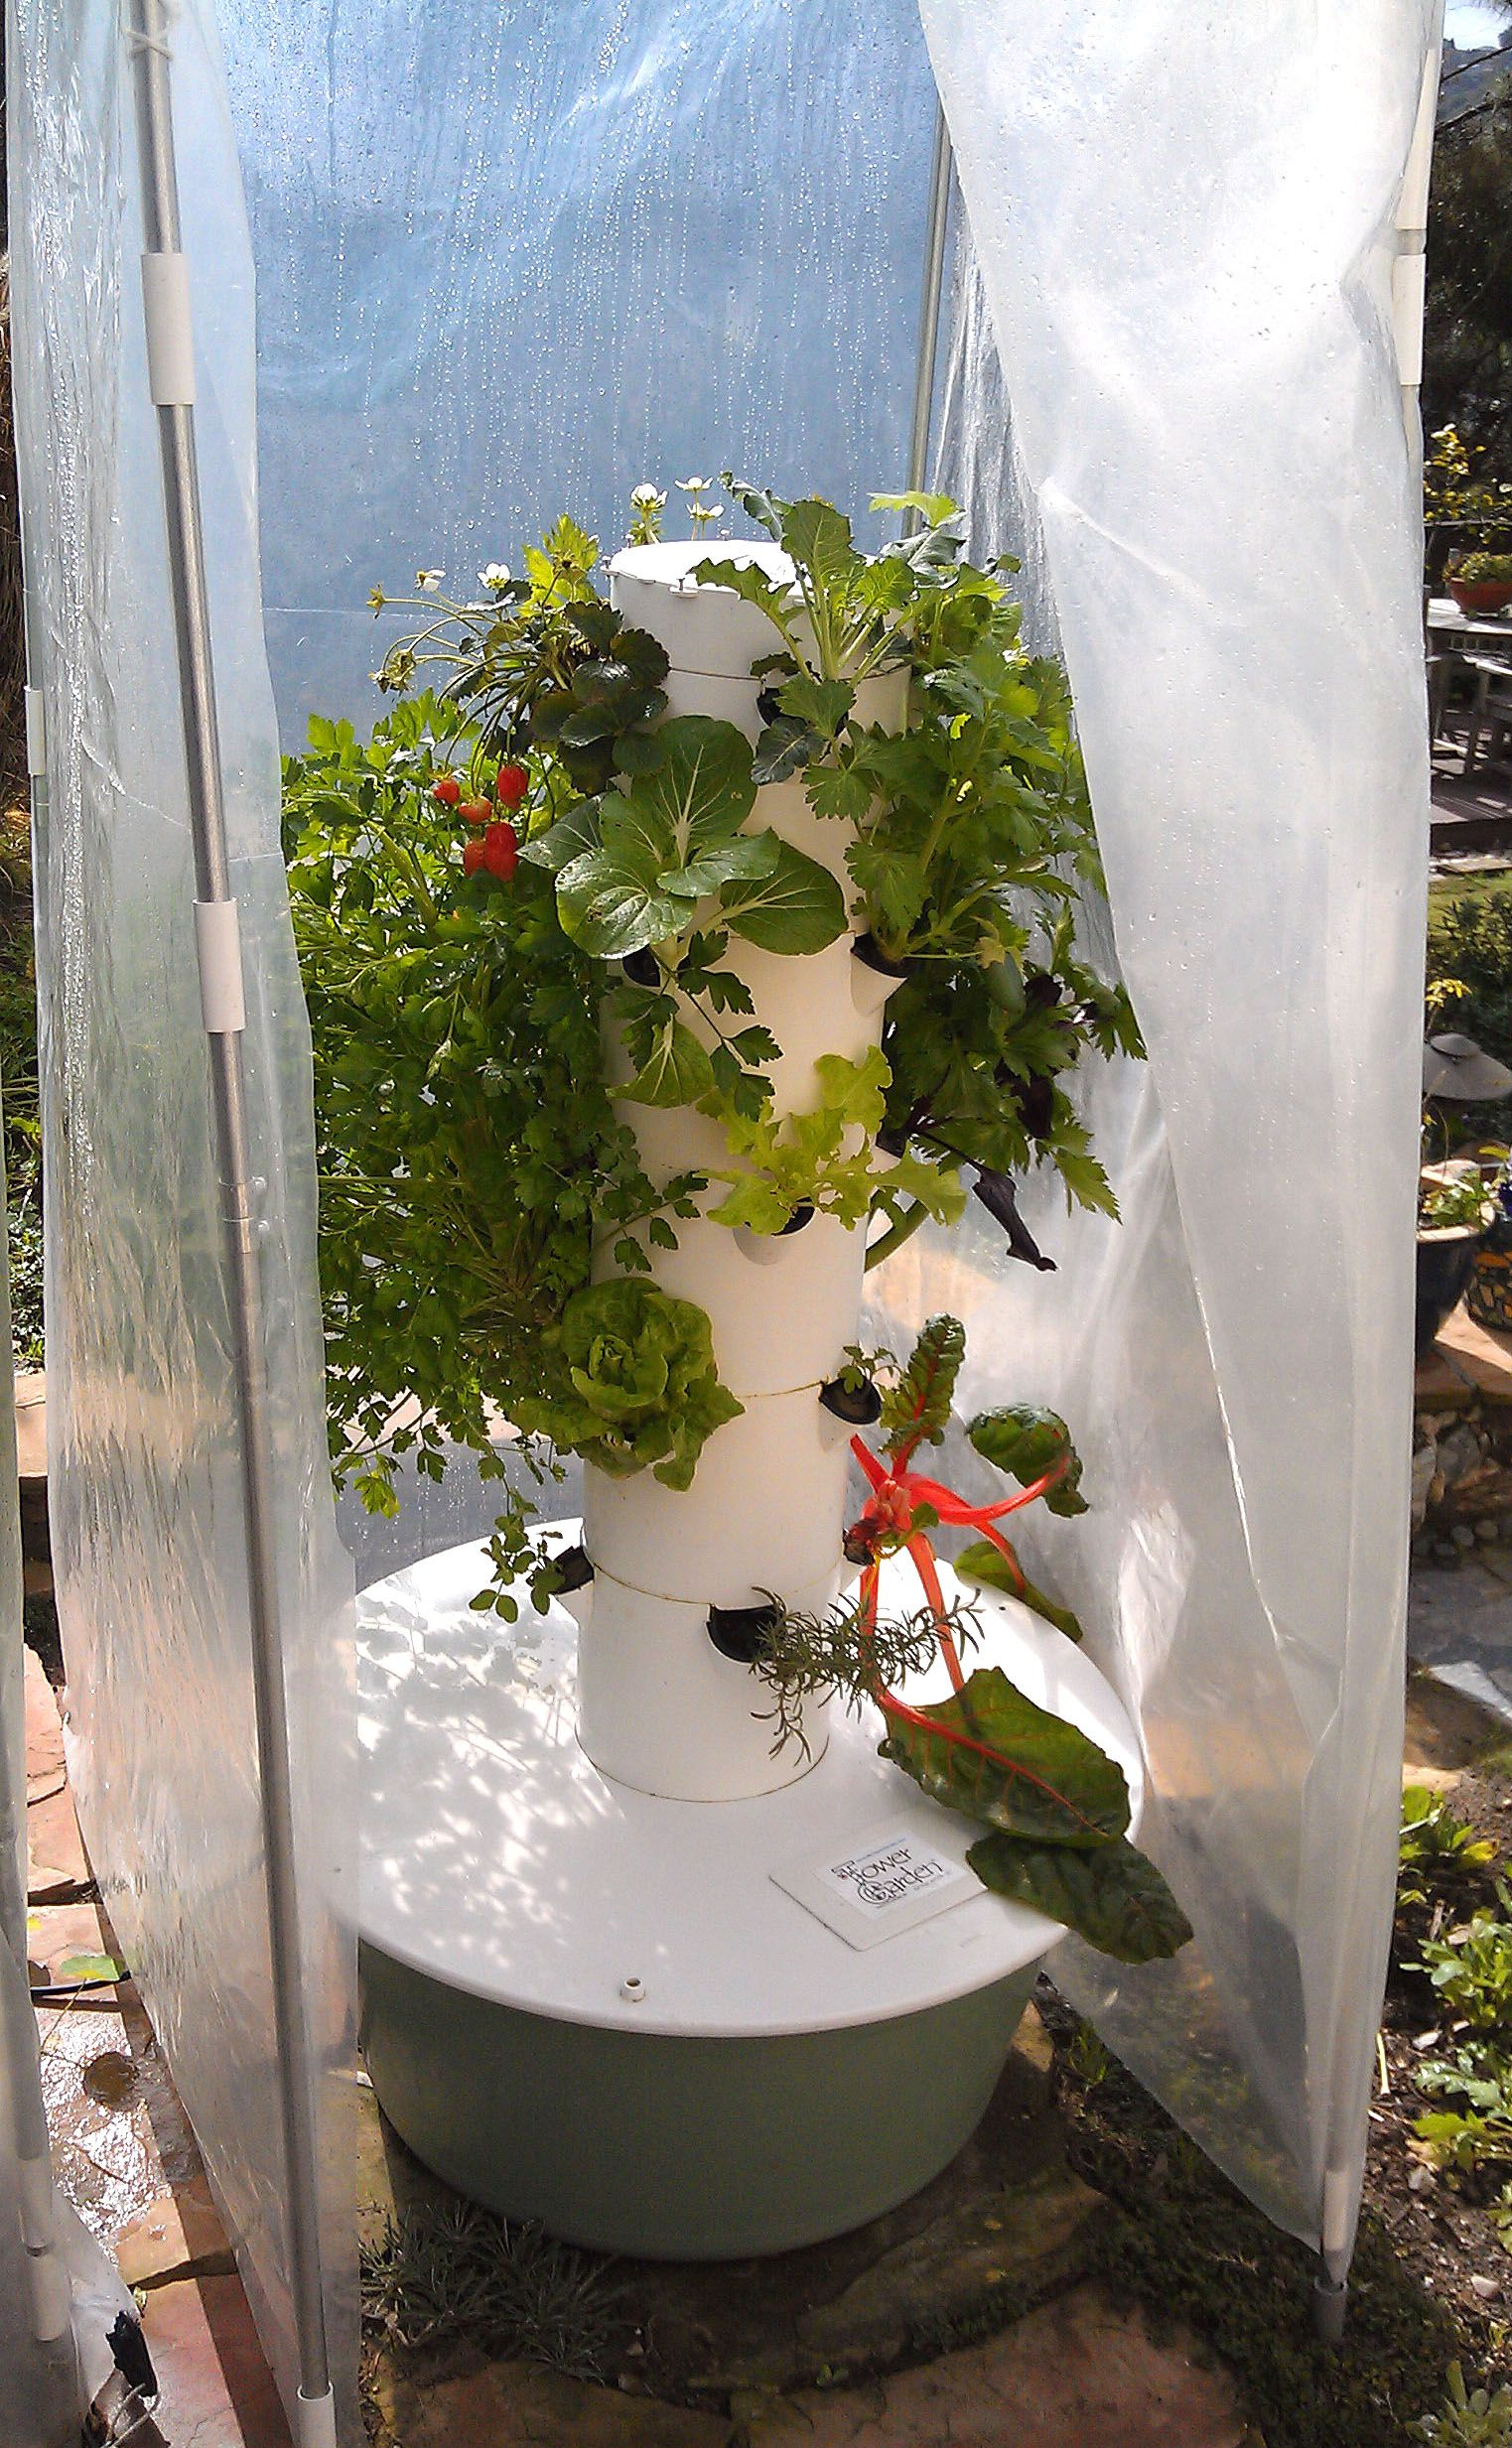 an Aeroponic Tower Gardener with the Amazing Tower